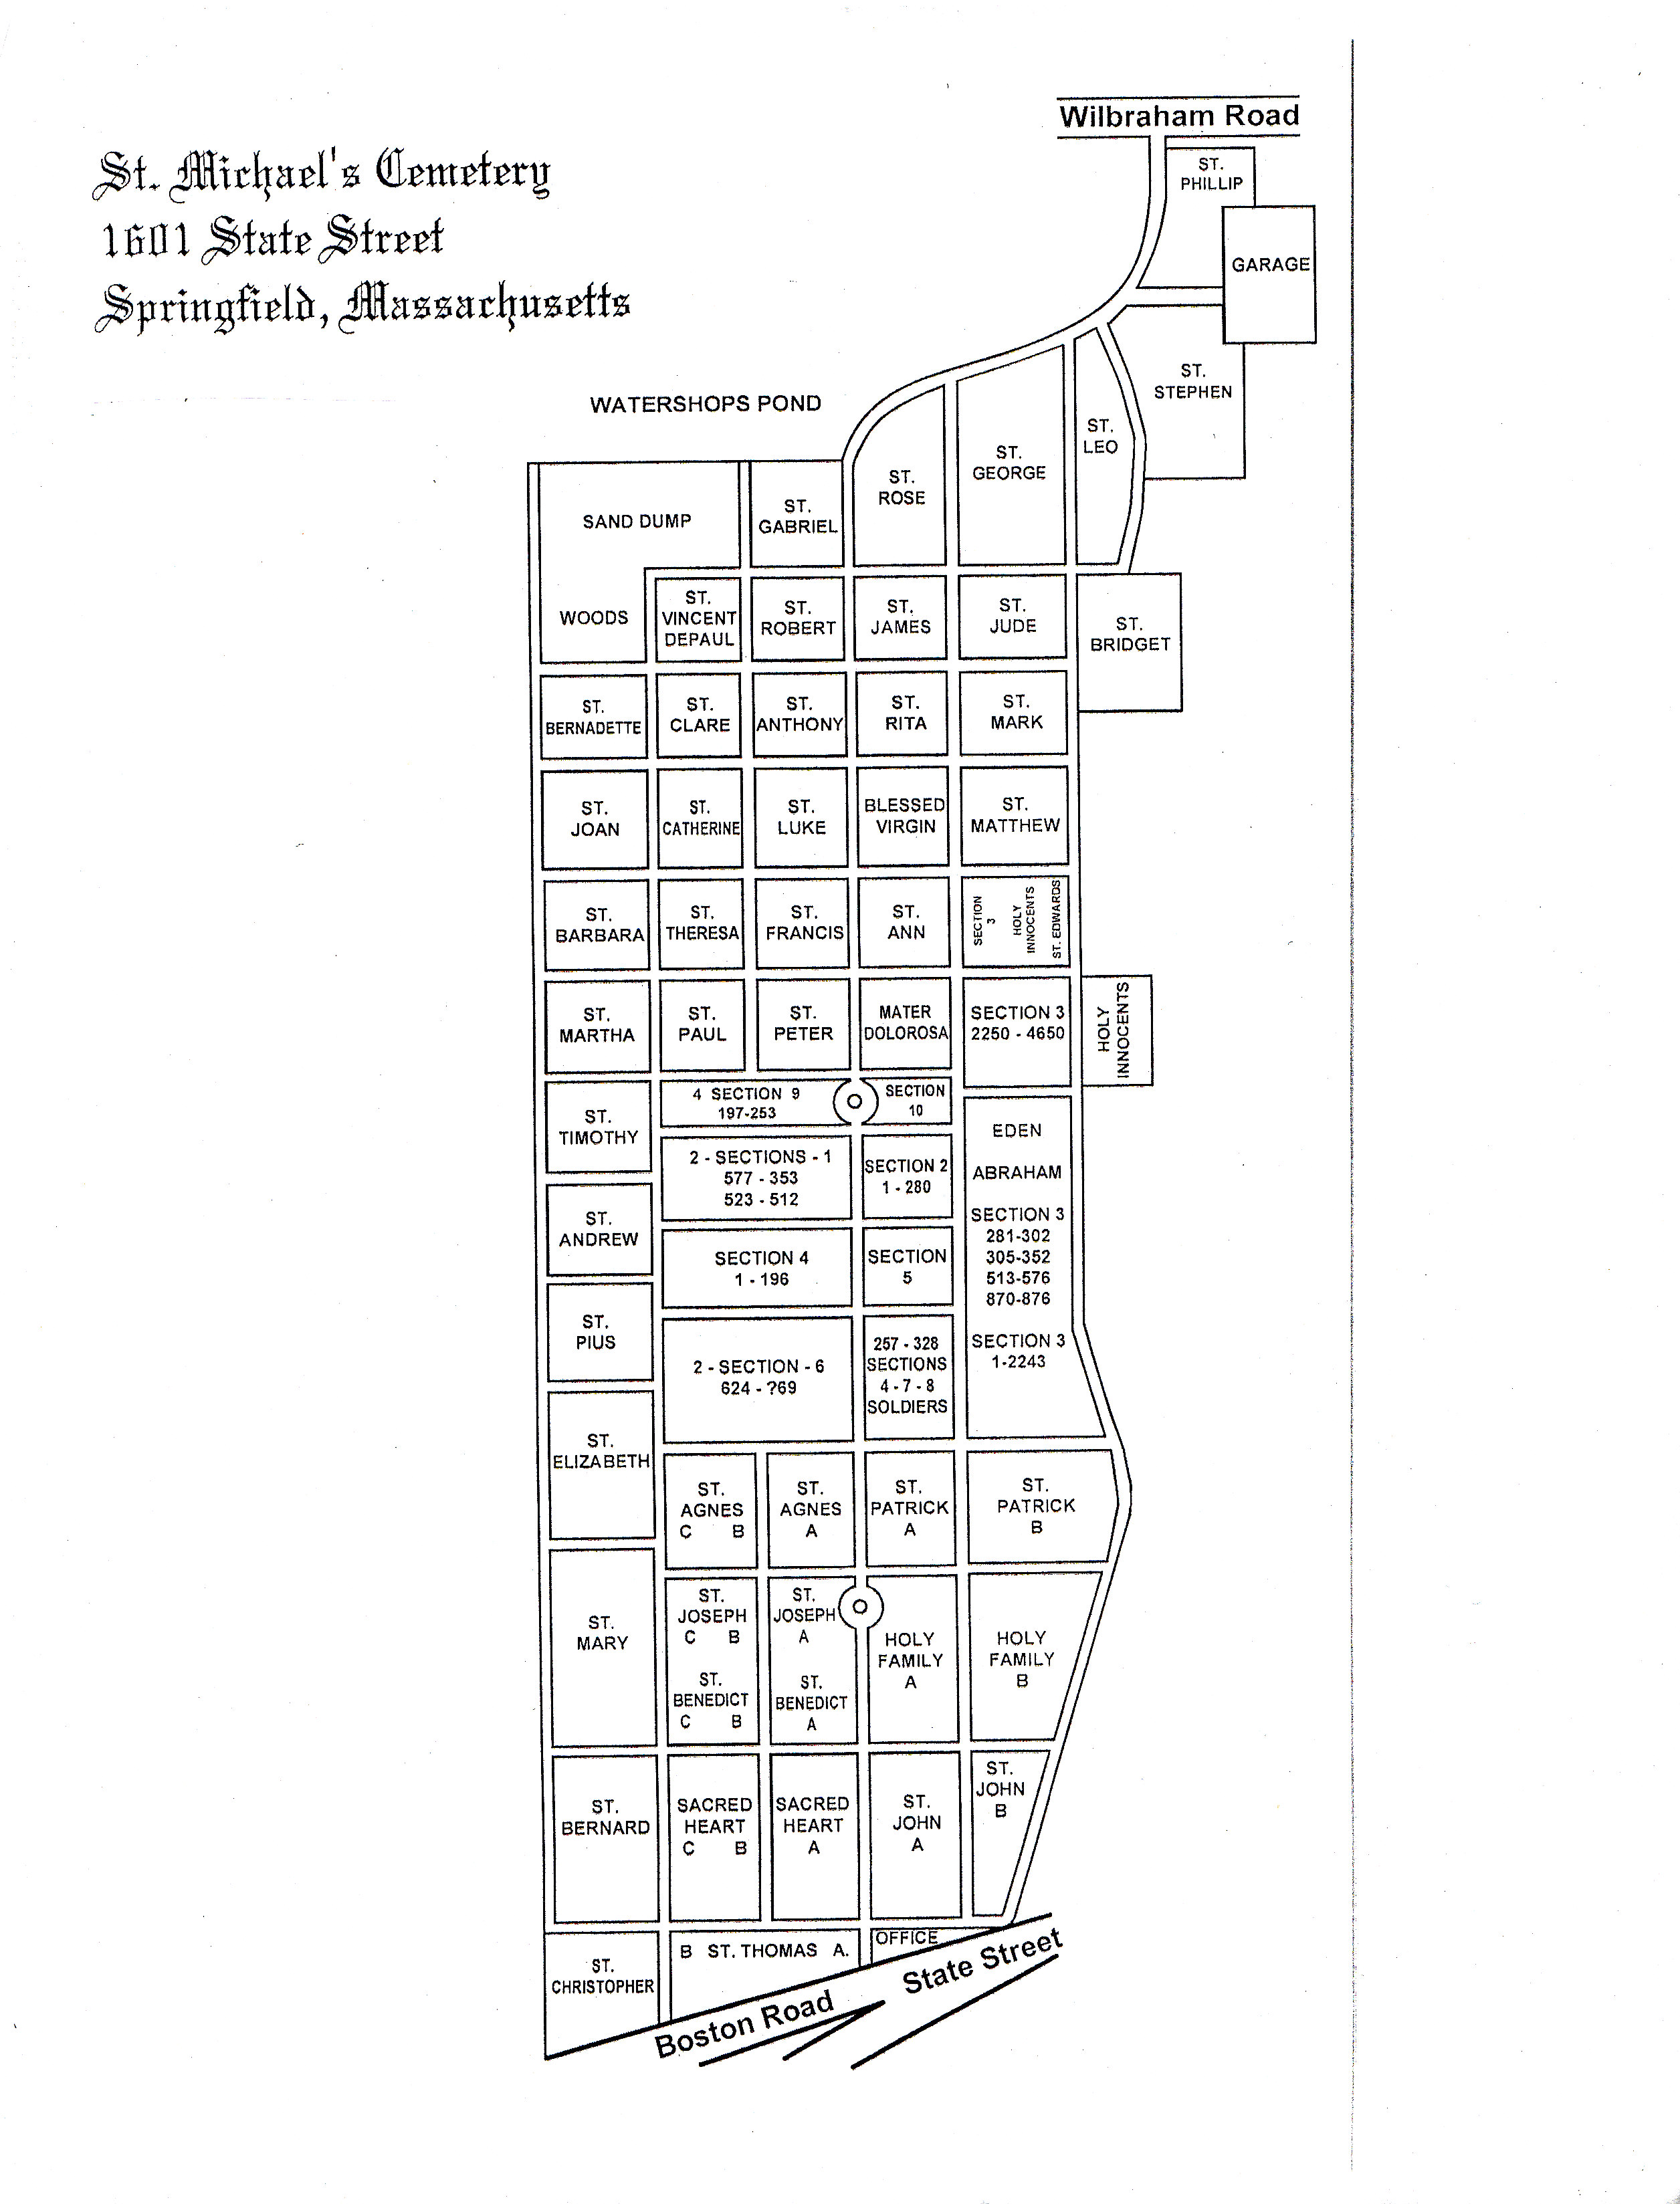 Saint Michaels Cemetery In Springfield Massachusetts Find A January 2013 Schematic Diagram Added By Jr Blain On 26 Jan